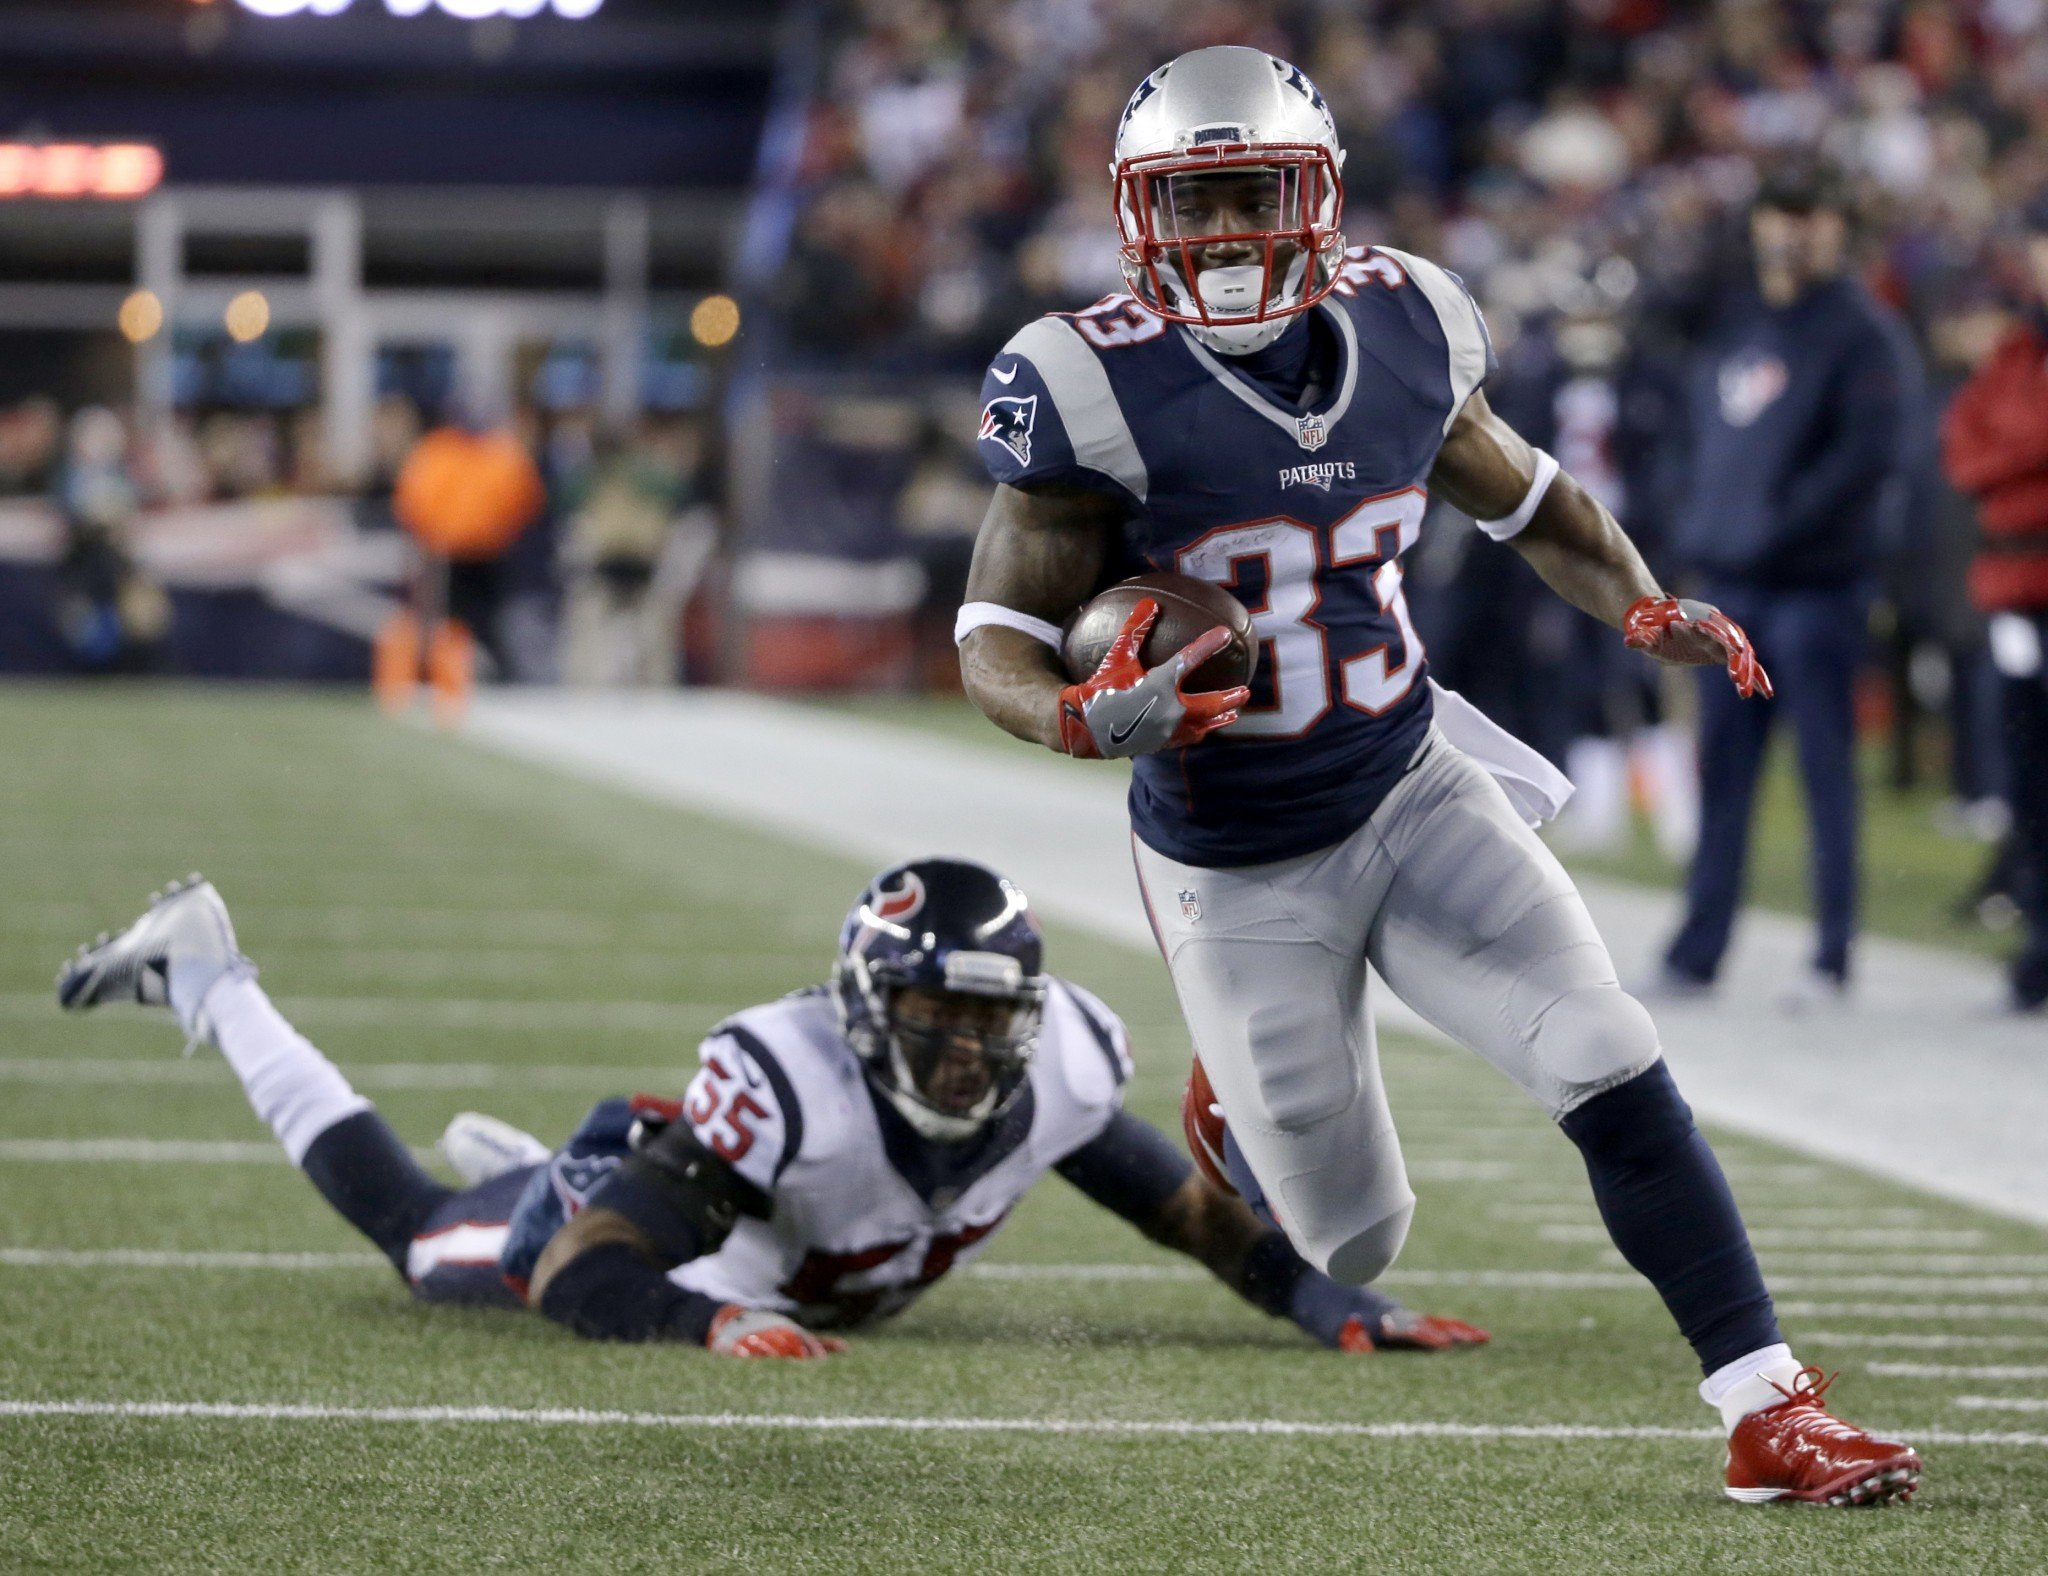 Dion Lewis scored three touchdowns for the Patriots in his postseason debut. (AP)